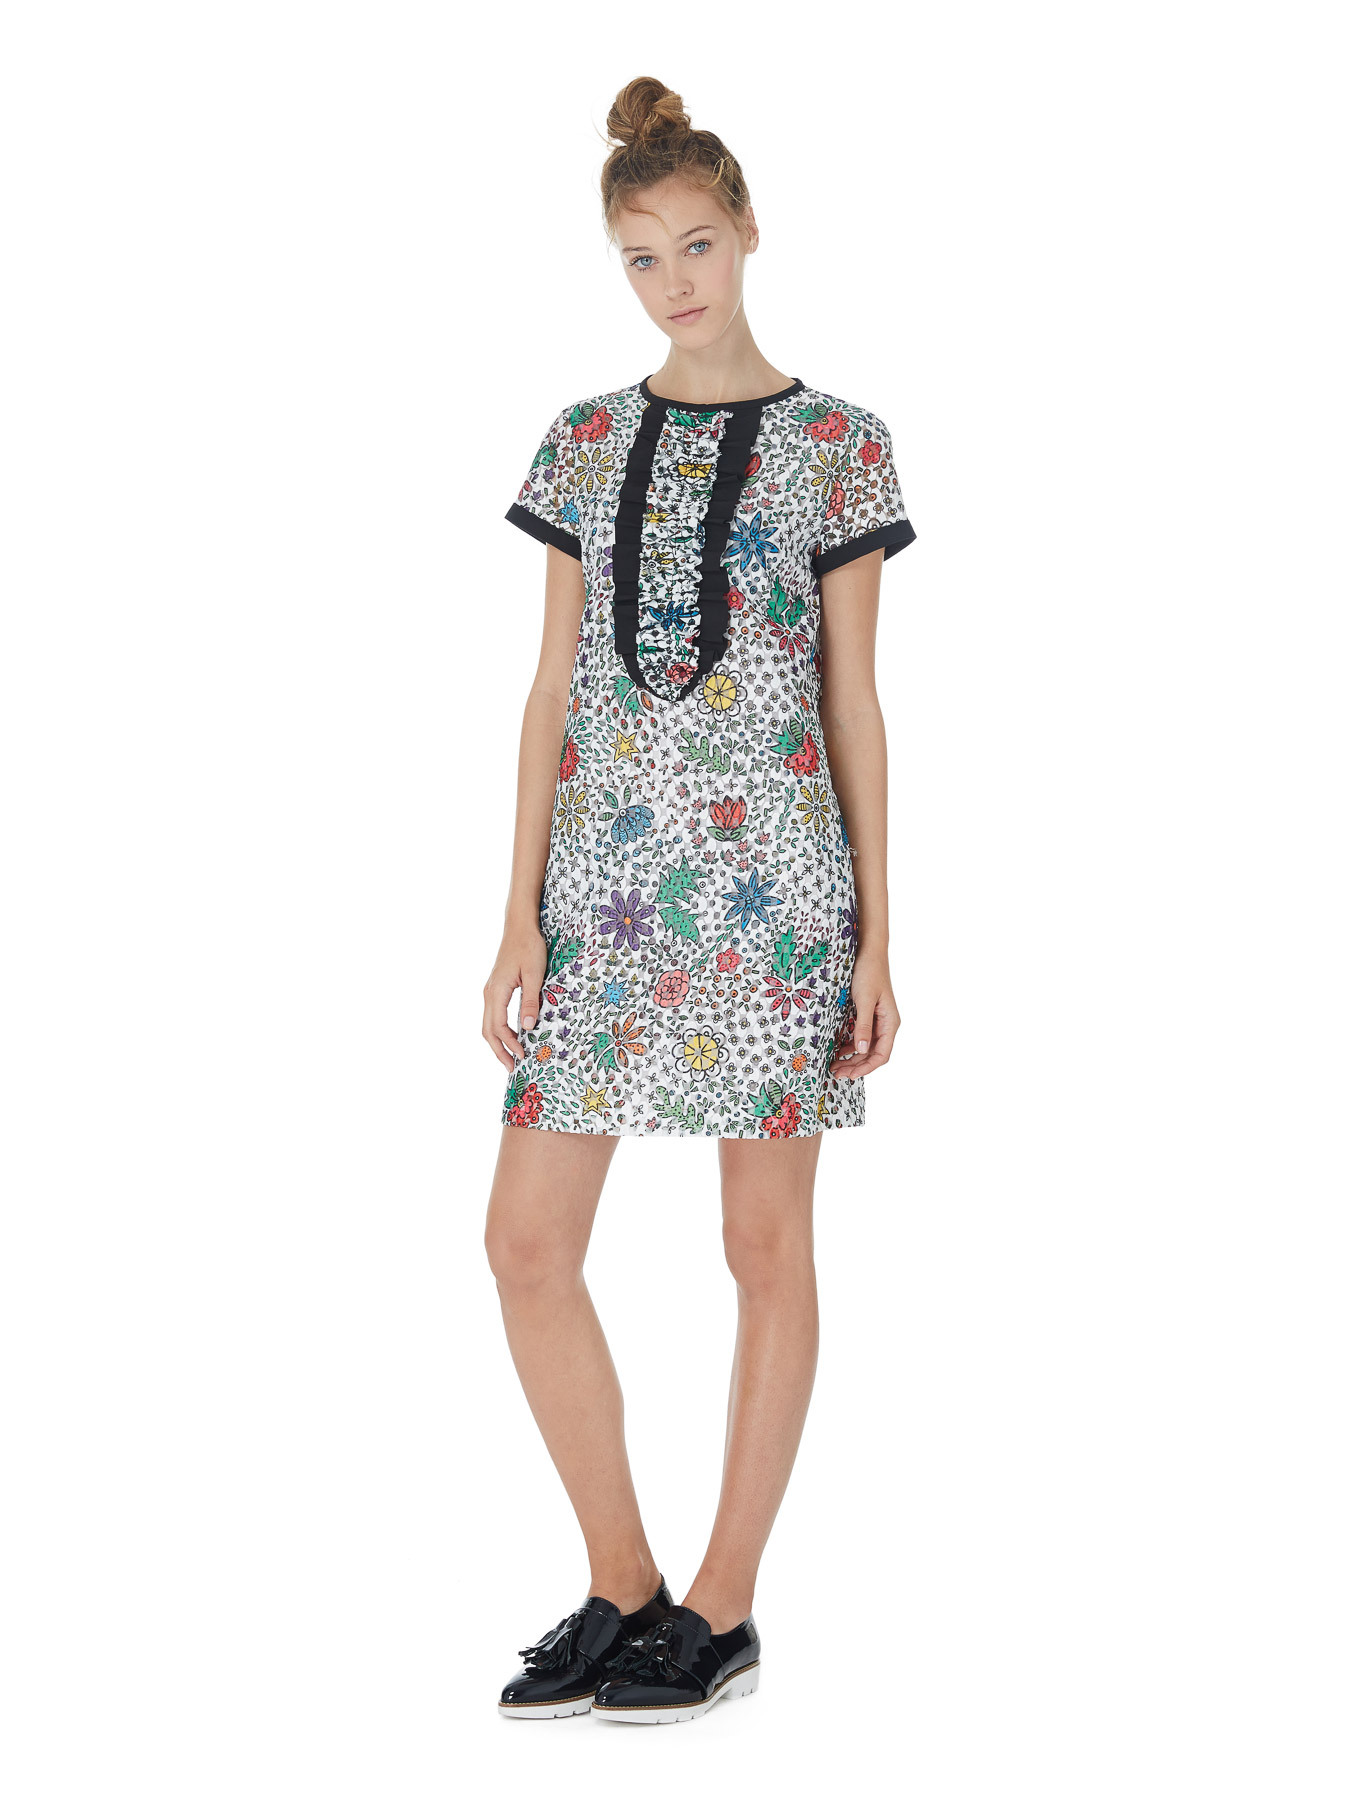 iBloom patterned organza dress